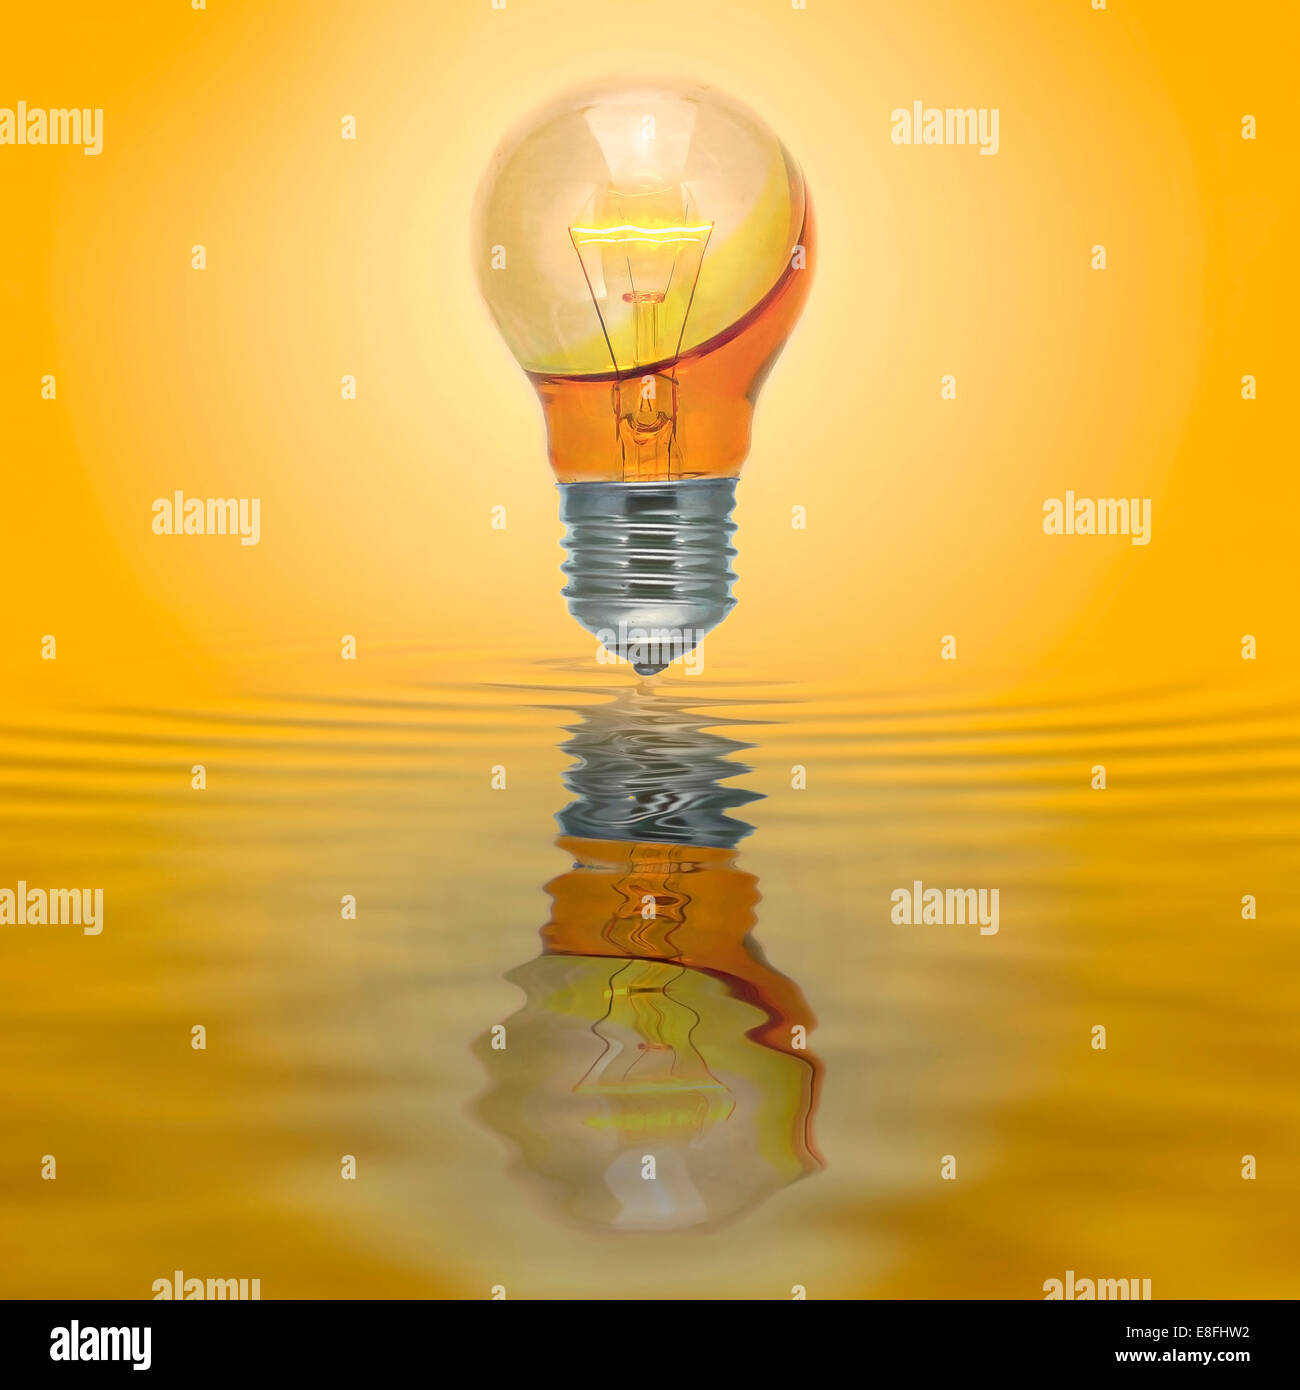 Enlighten bulb with no electrical connection filled with yellow water - Stock Image